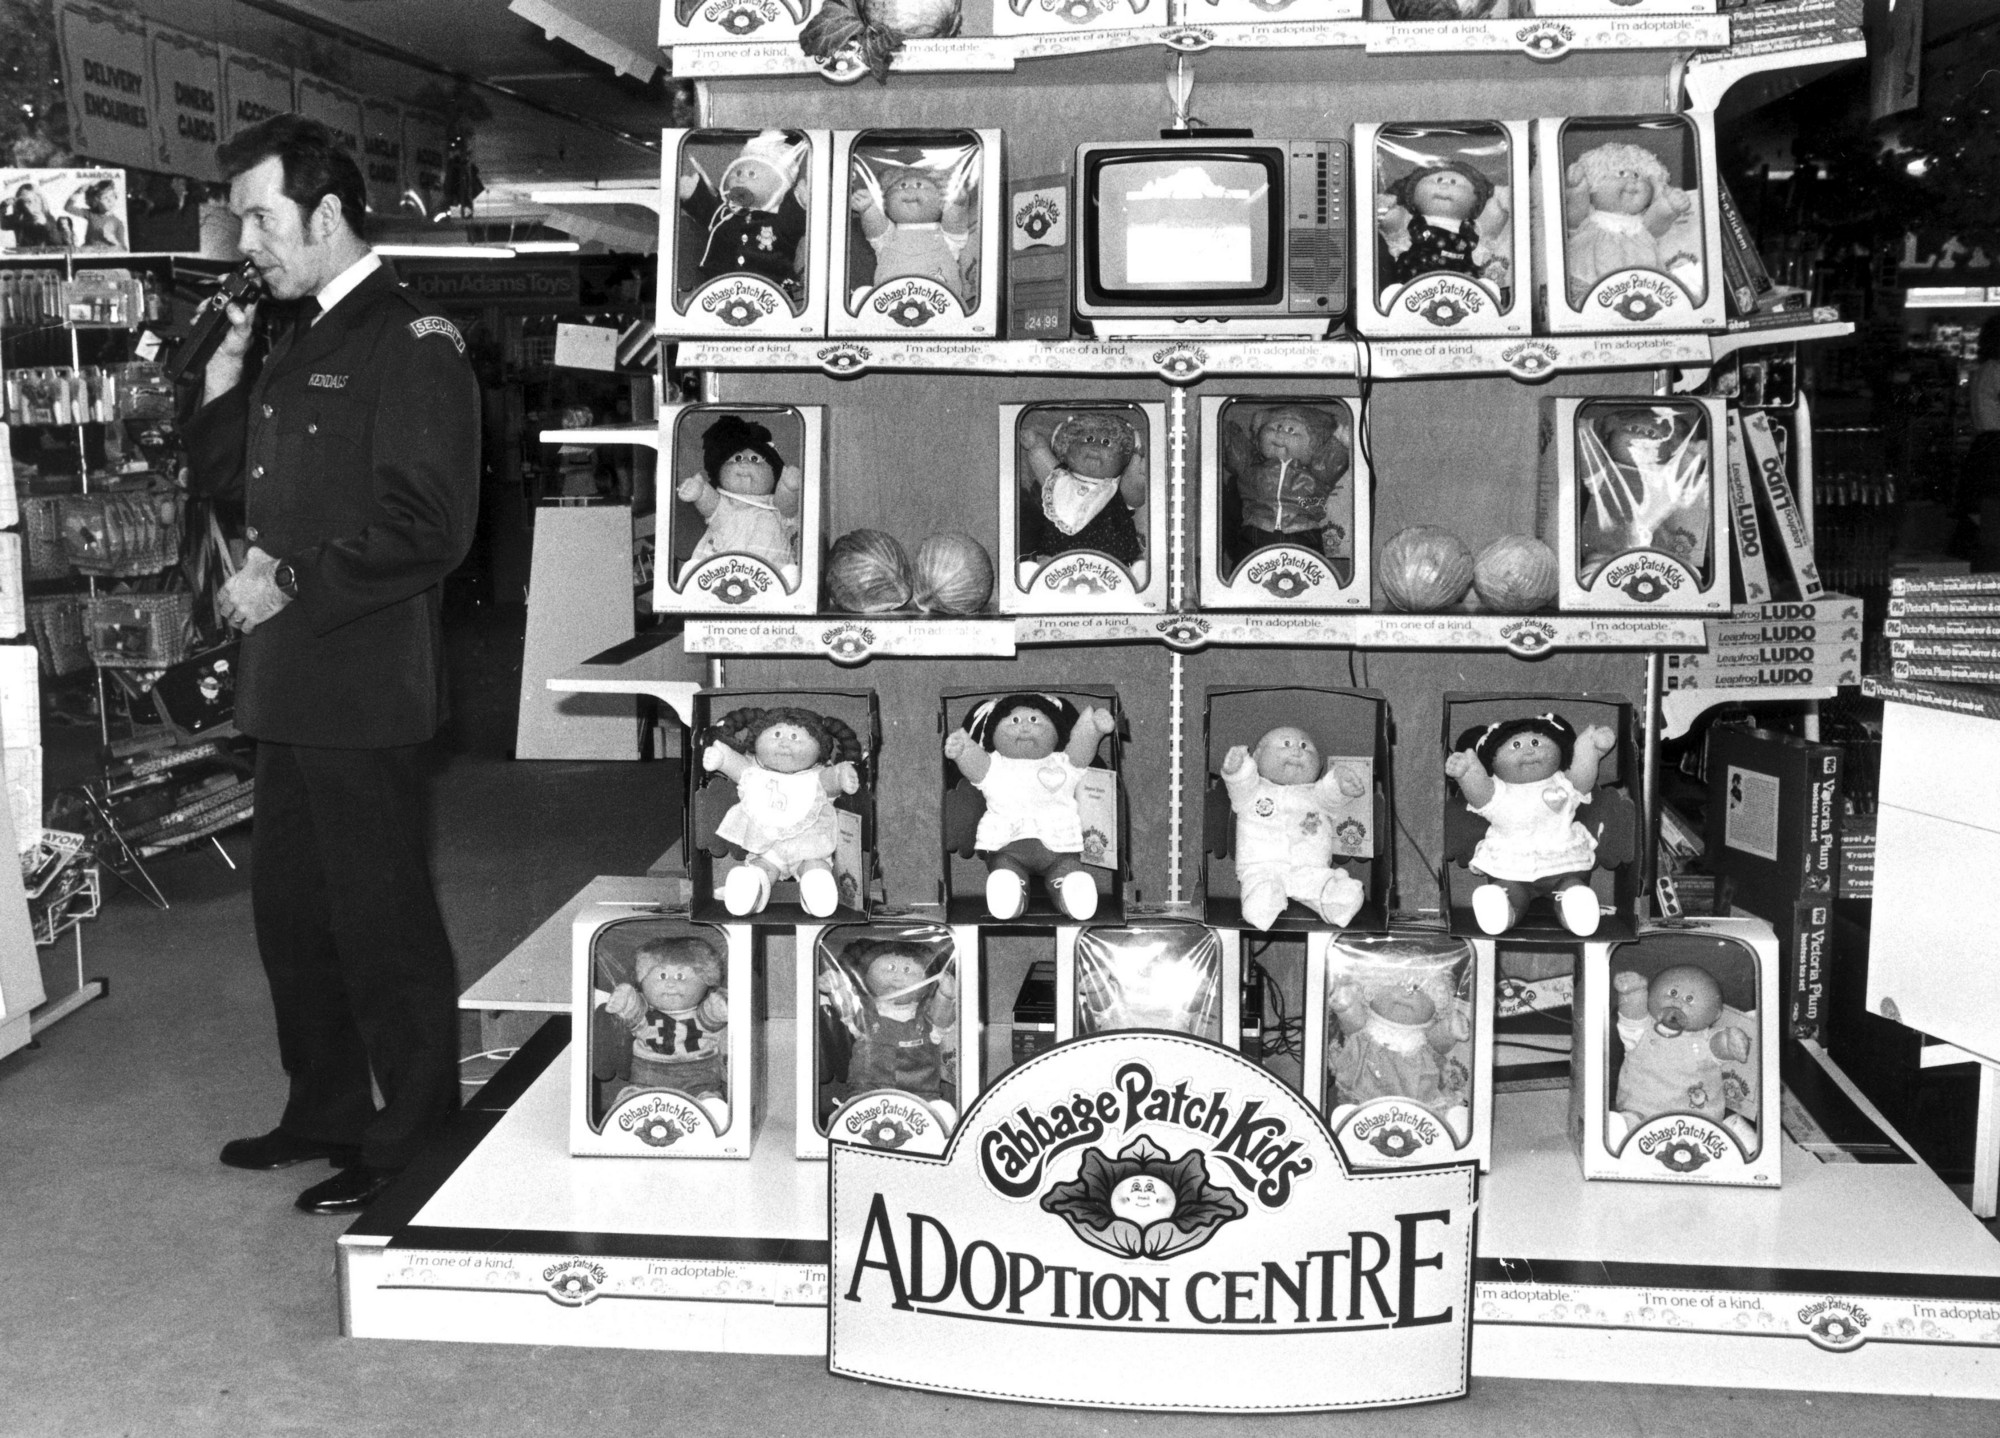 The weird rabid history of the cabbage patch craze security was tight at this adoption center in manchester england in 1983 the cabbage patch craze had already caused riots in america getty images yadclub Choice Image